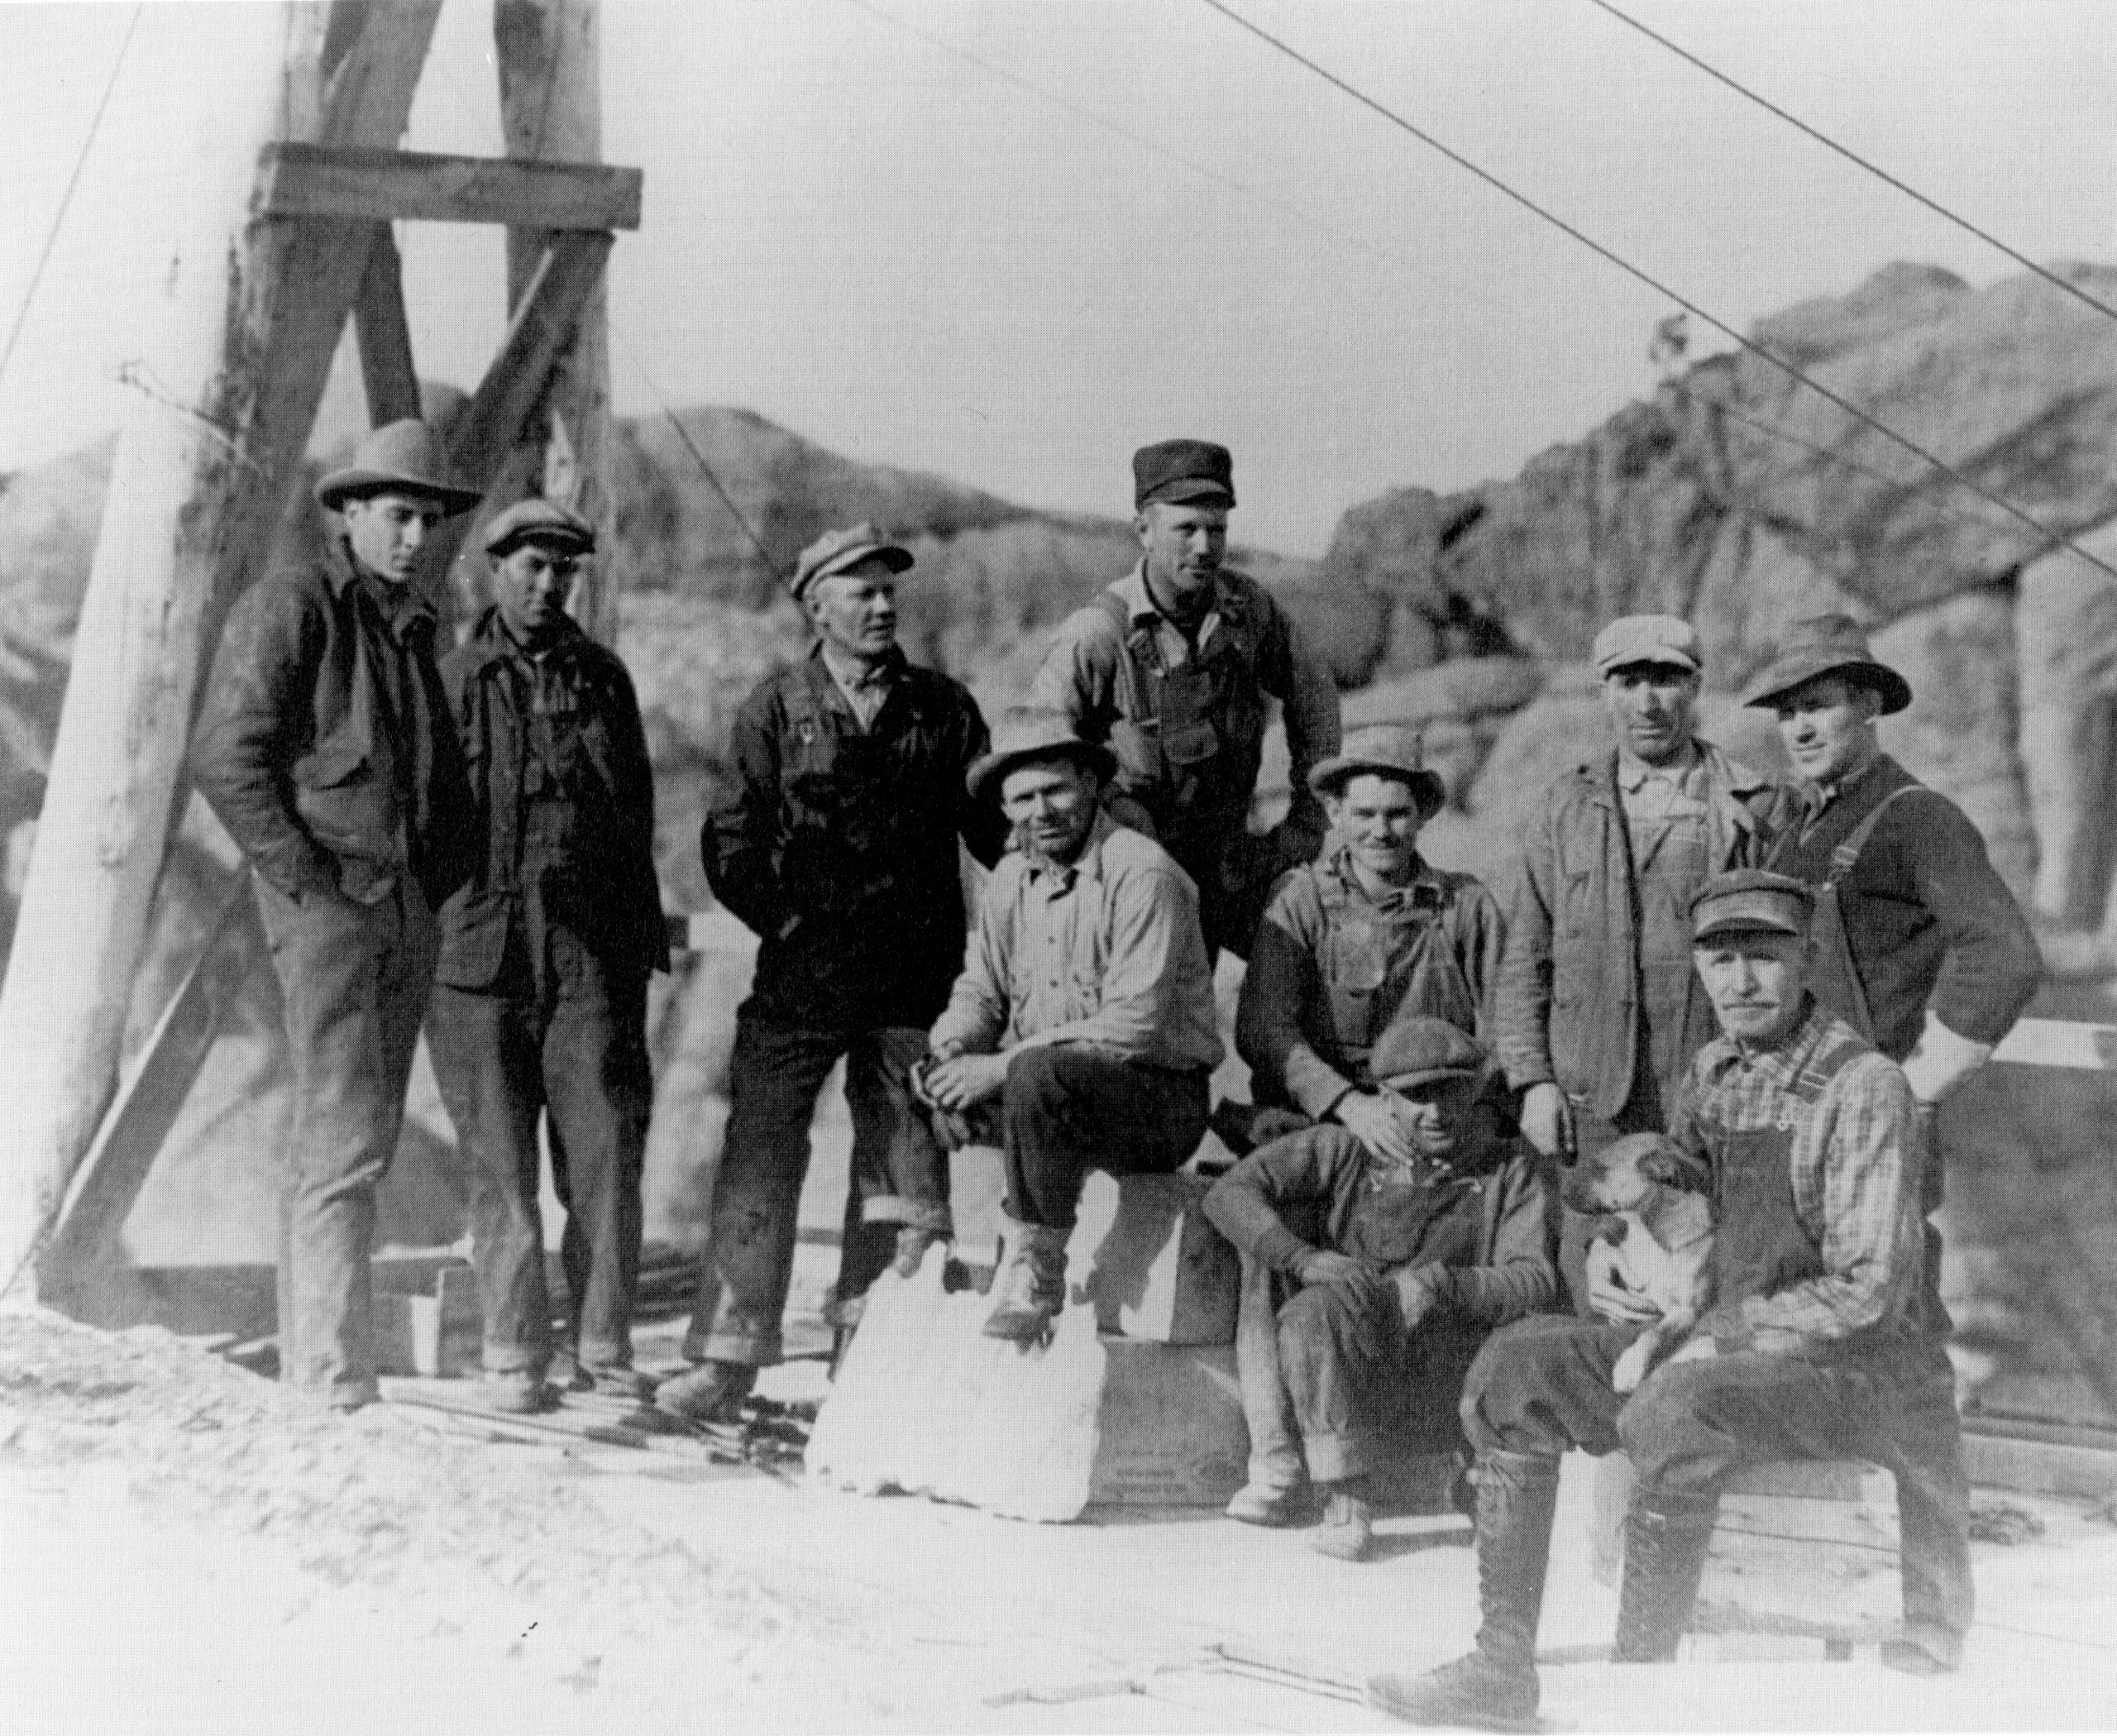 Workers take a break atop the mountain, c. 1930s.